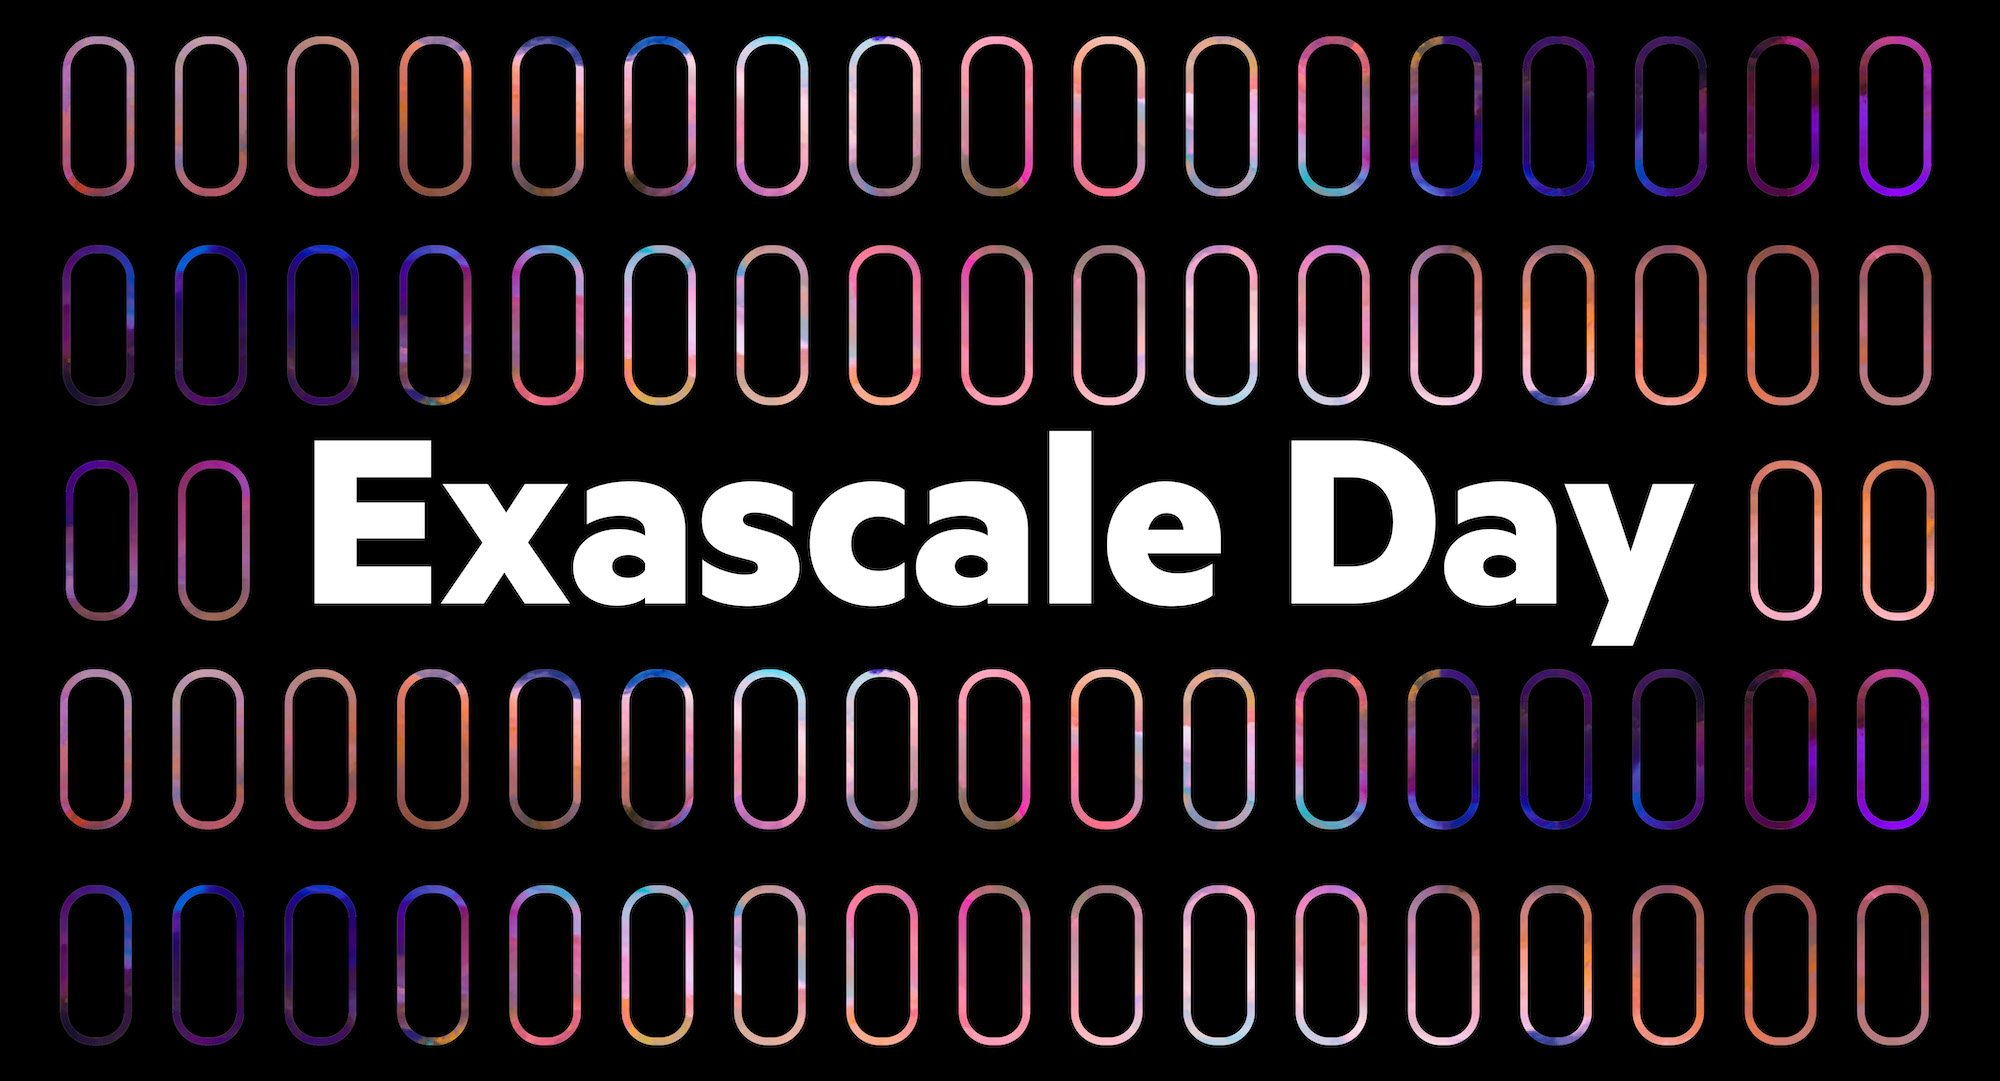 Exascale Day Playlist • October 18th